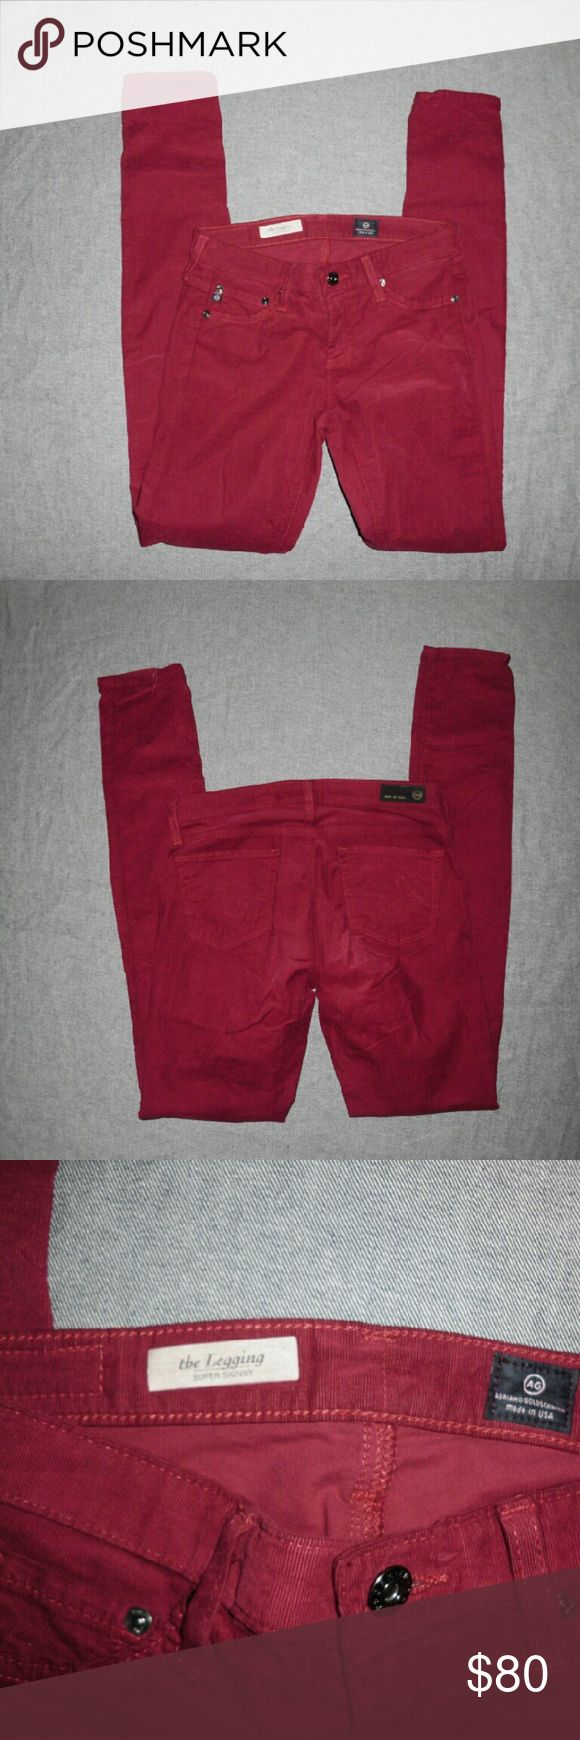 AG Adriano Goldschmied Corduroy Leggings Size 25R Gorgeous corduroy leggings Super Skinny in a beautiful vivid color. Pants are in a excellent Pre-loved condition. AG Adriano Goldschmied Pants Leggings